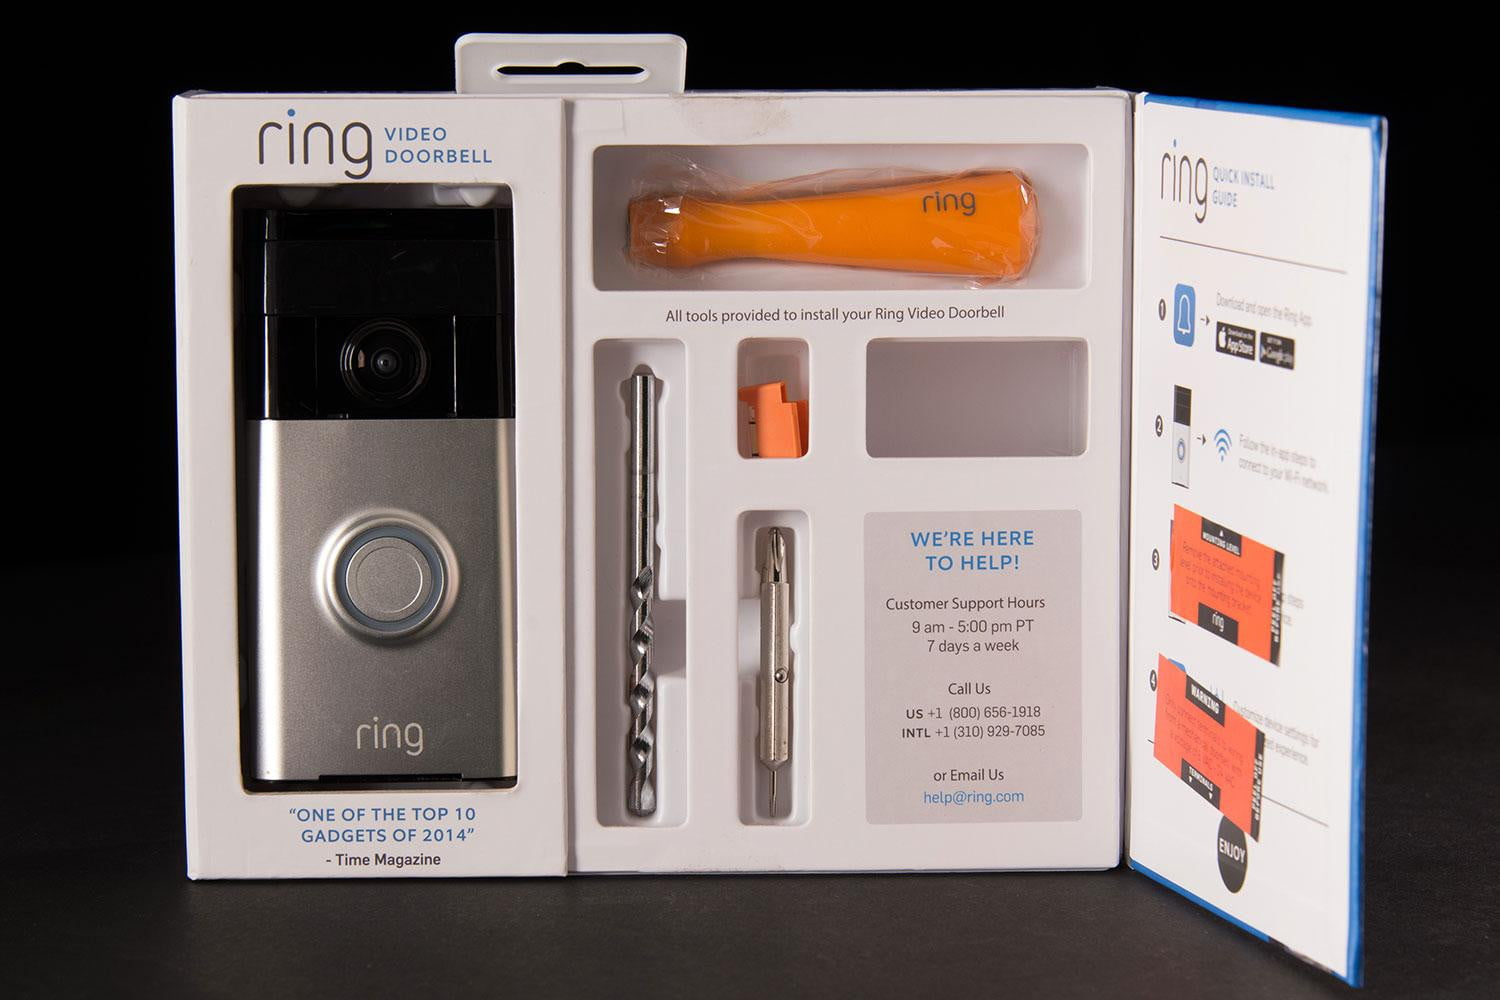 modern house wiring diagram three phase converter index of postpic 2015 07 ring video doorbell review | digital trends